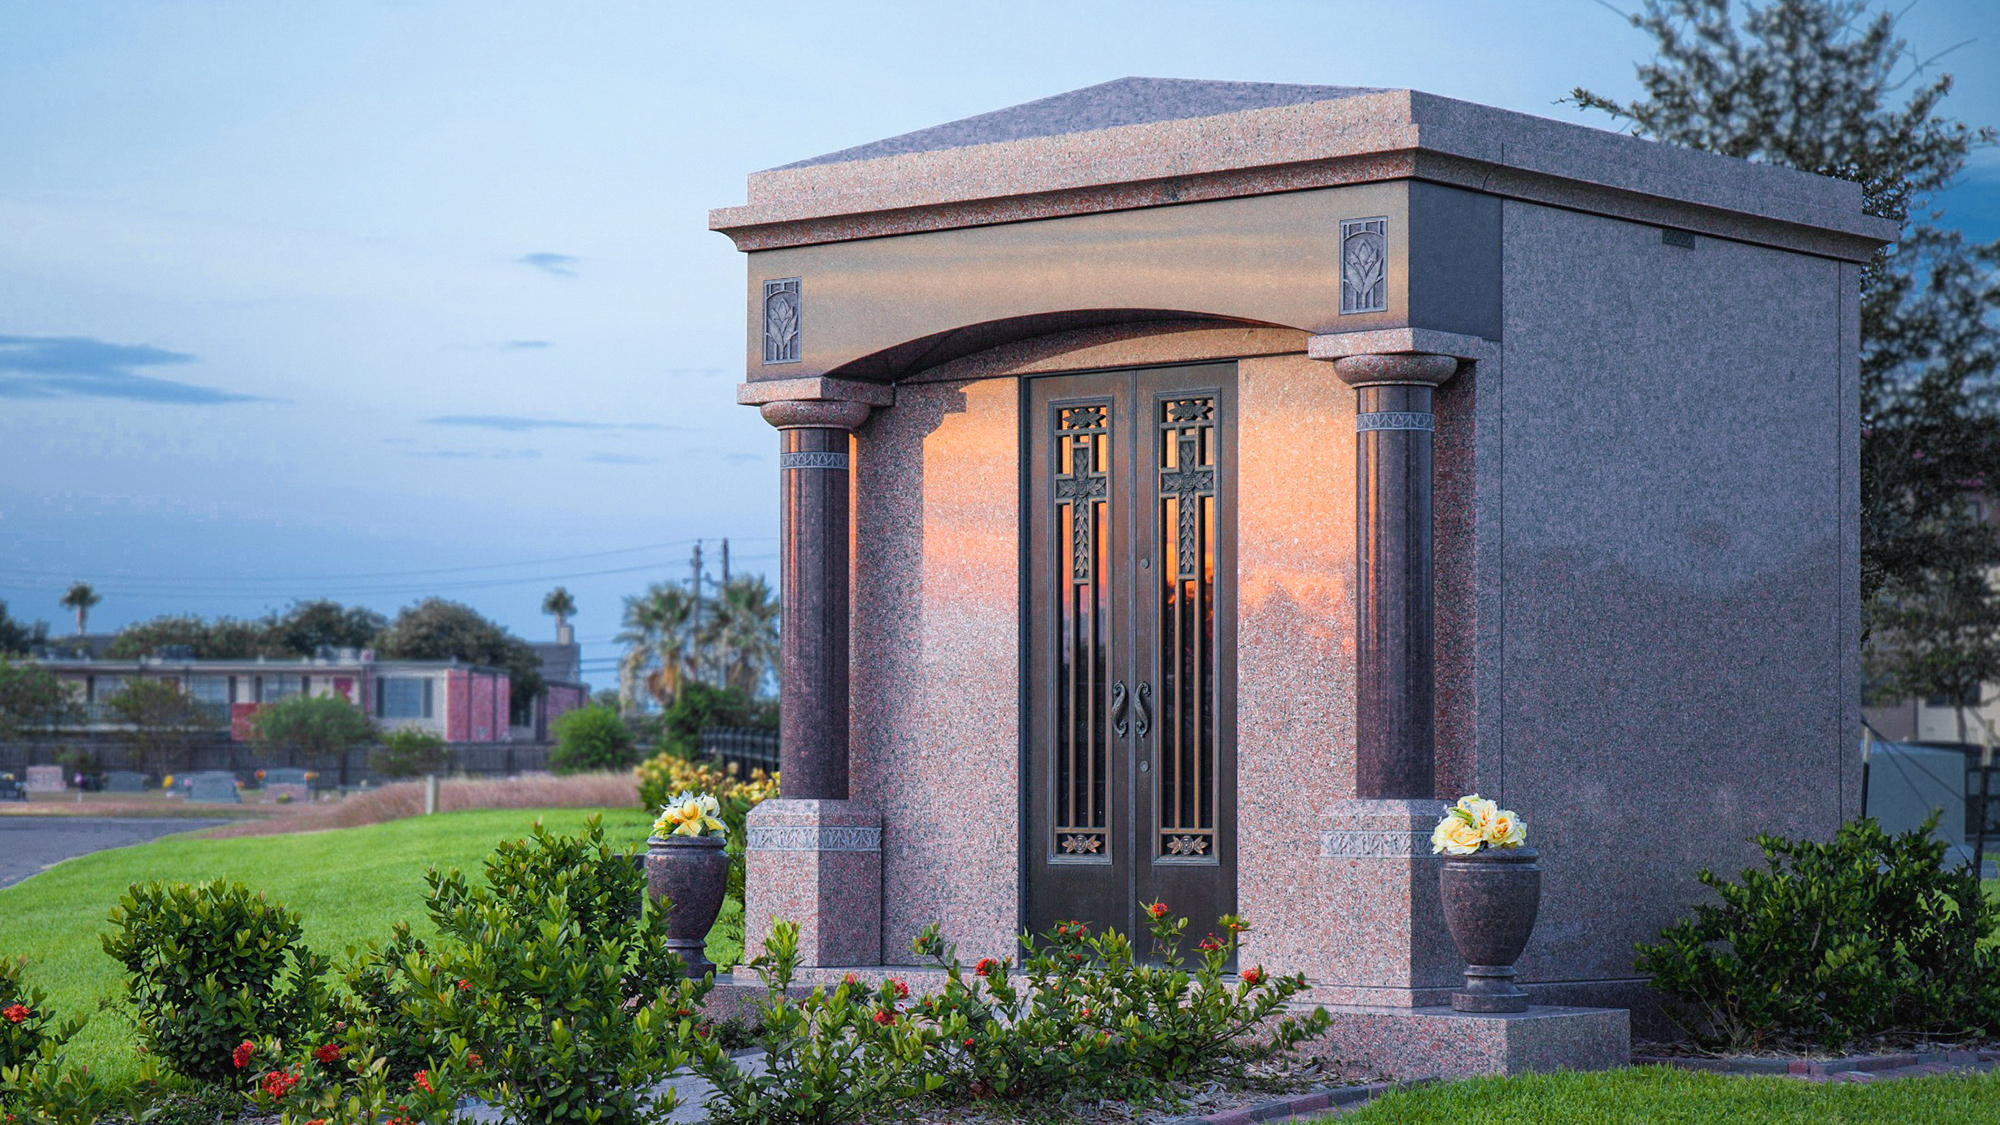 Seaside Funeral Home & Memorial Park